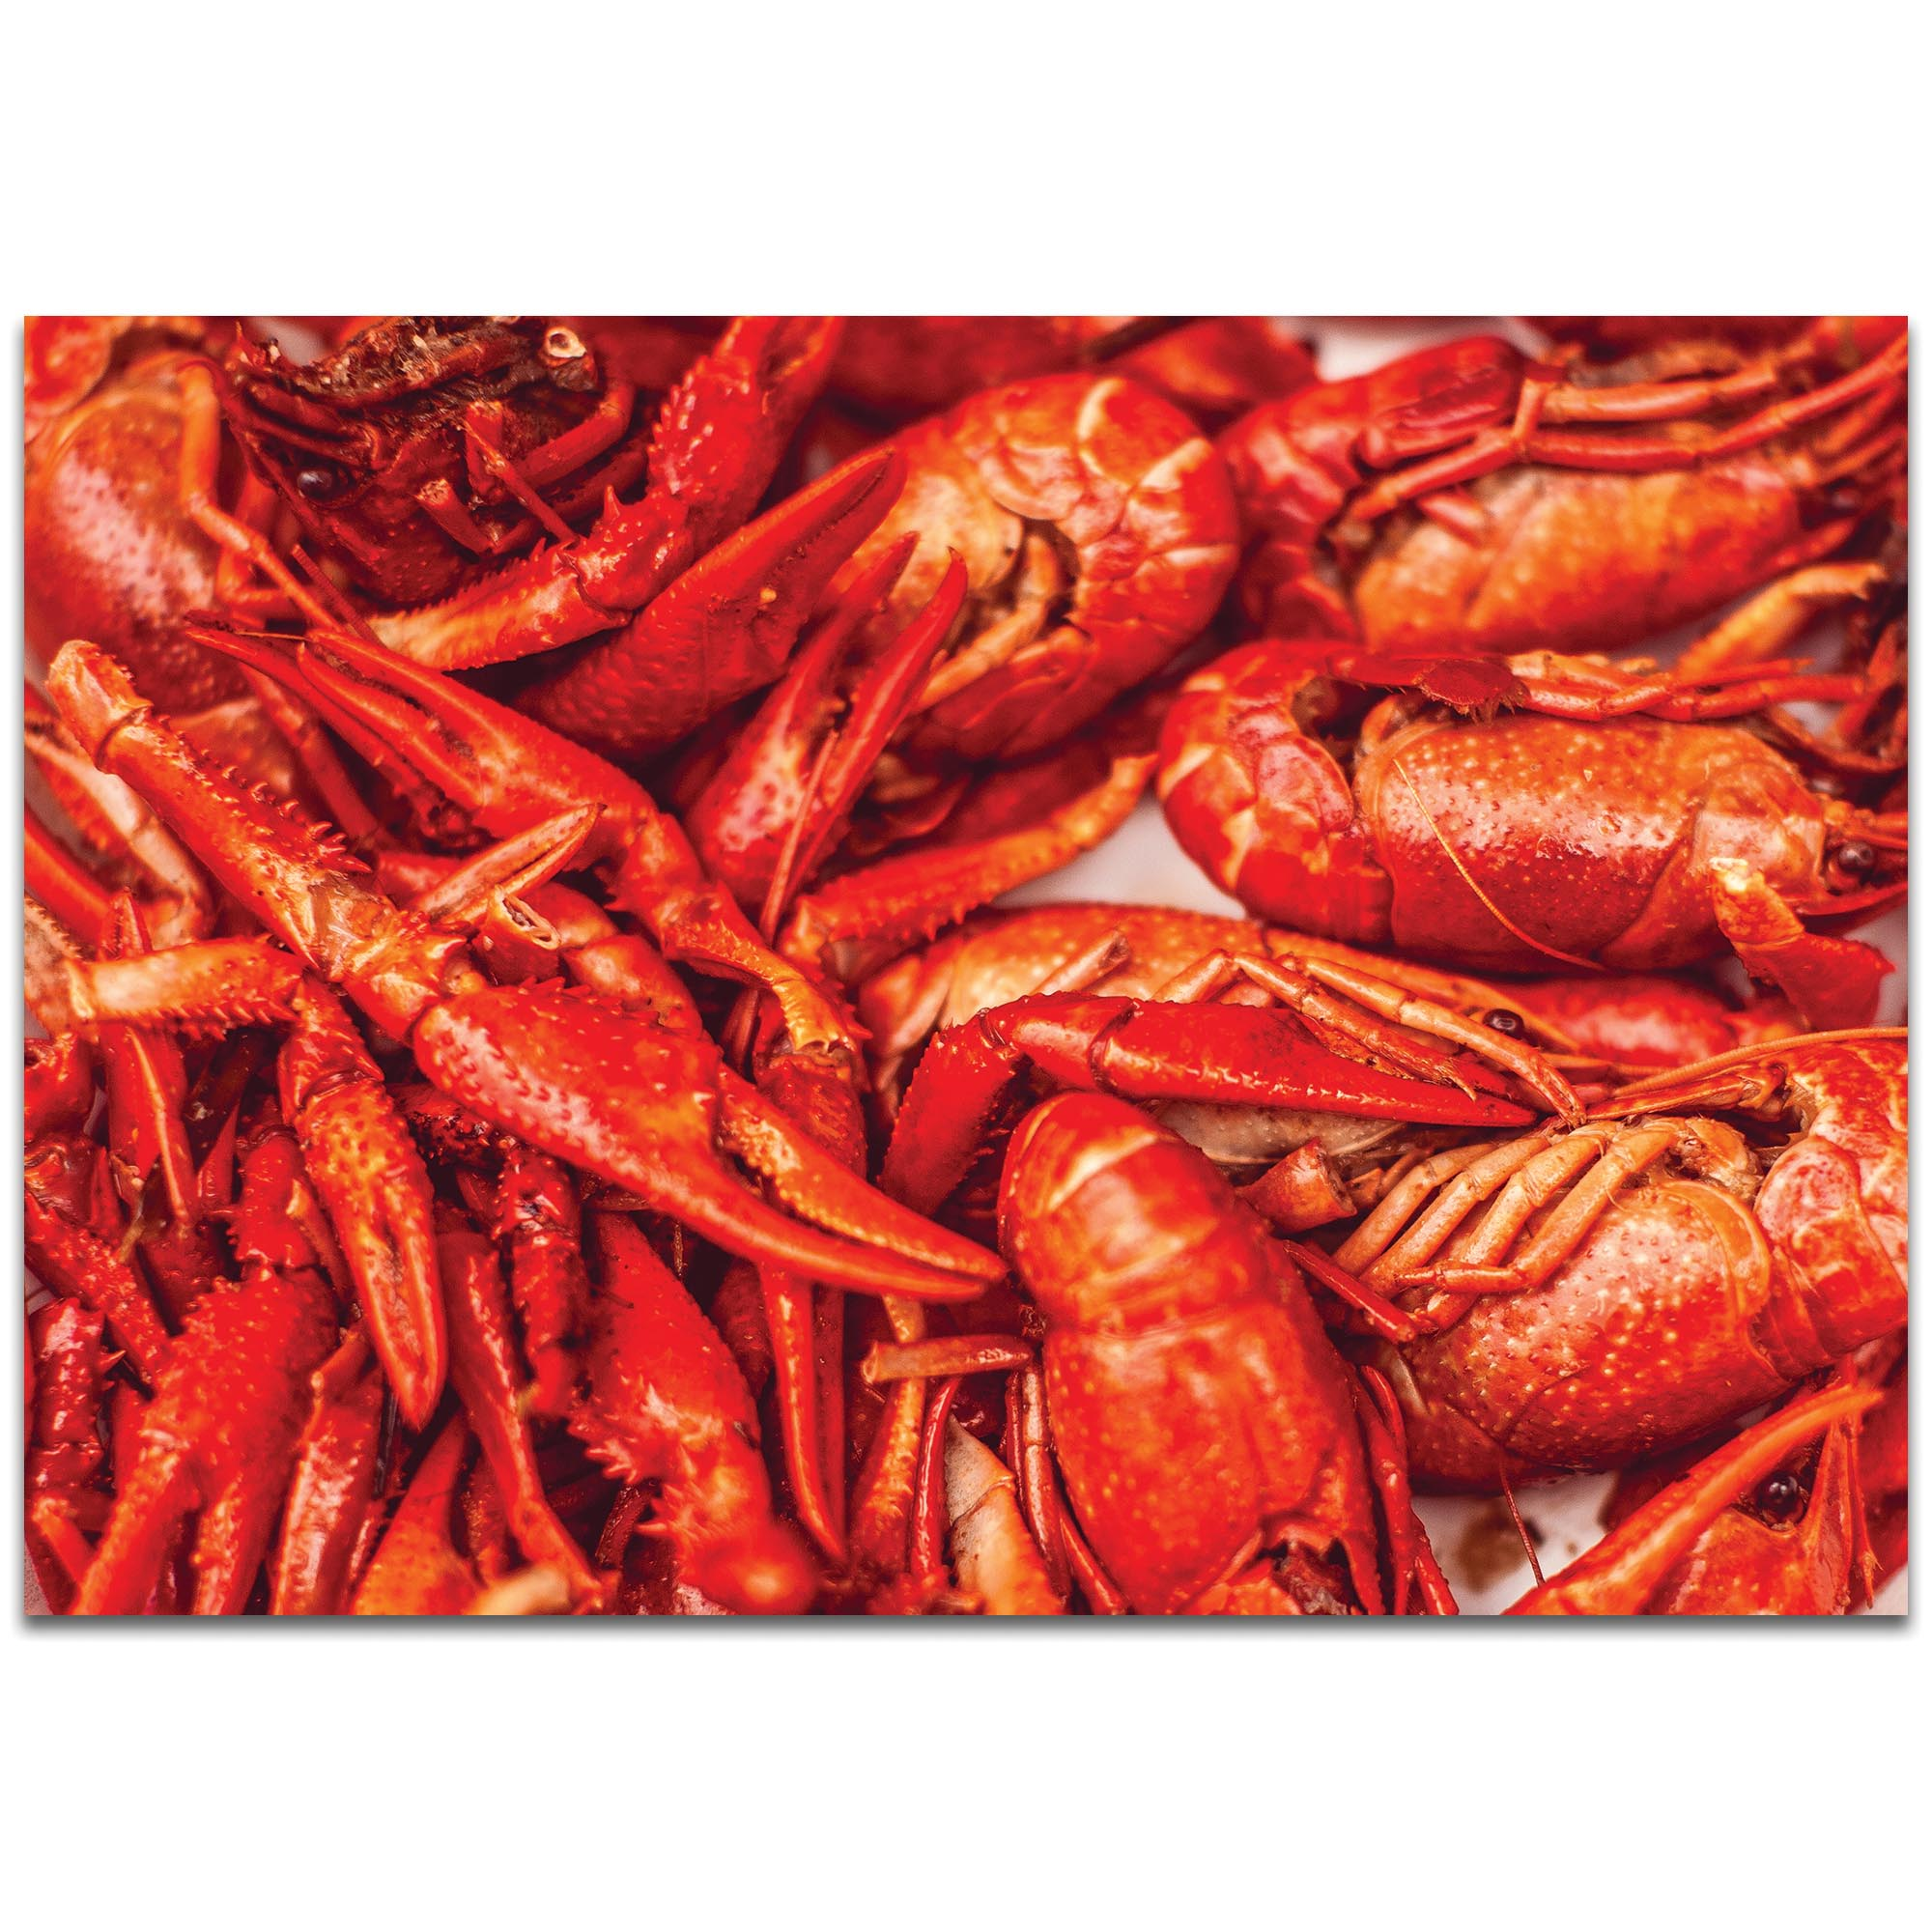 Coastal Wall Art 'Crawfish Supper' - Crayfish Boil Decor on Metal or Plexiglass